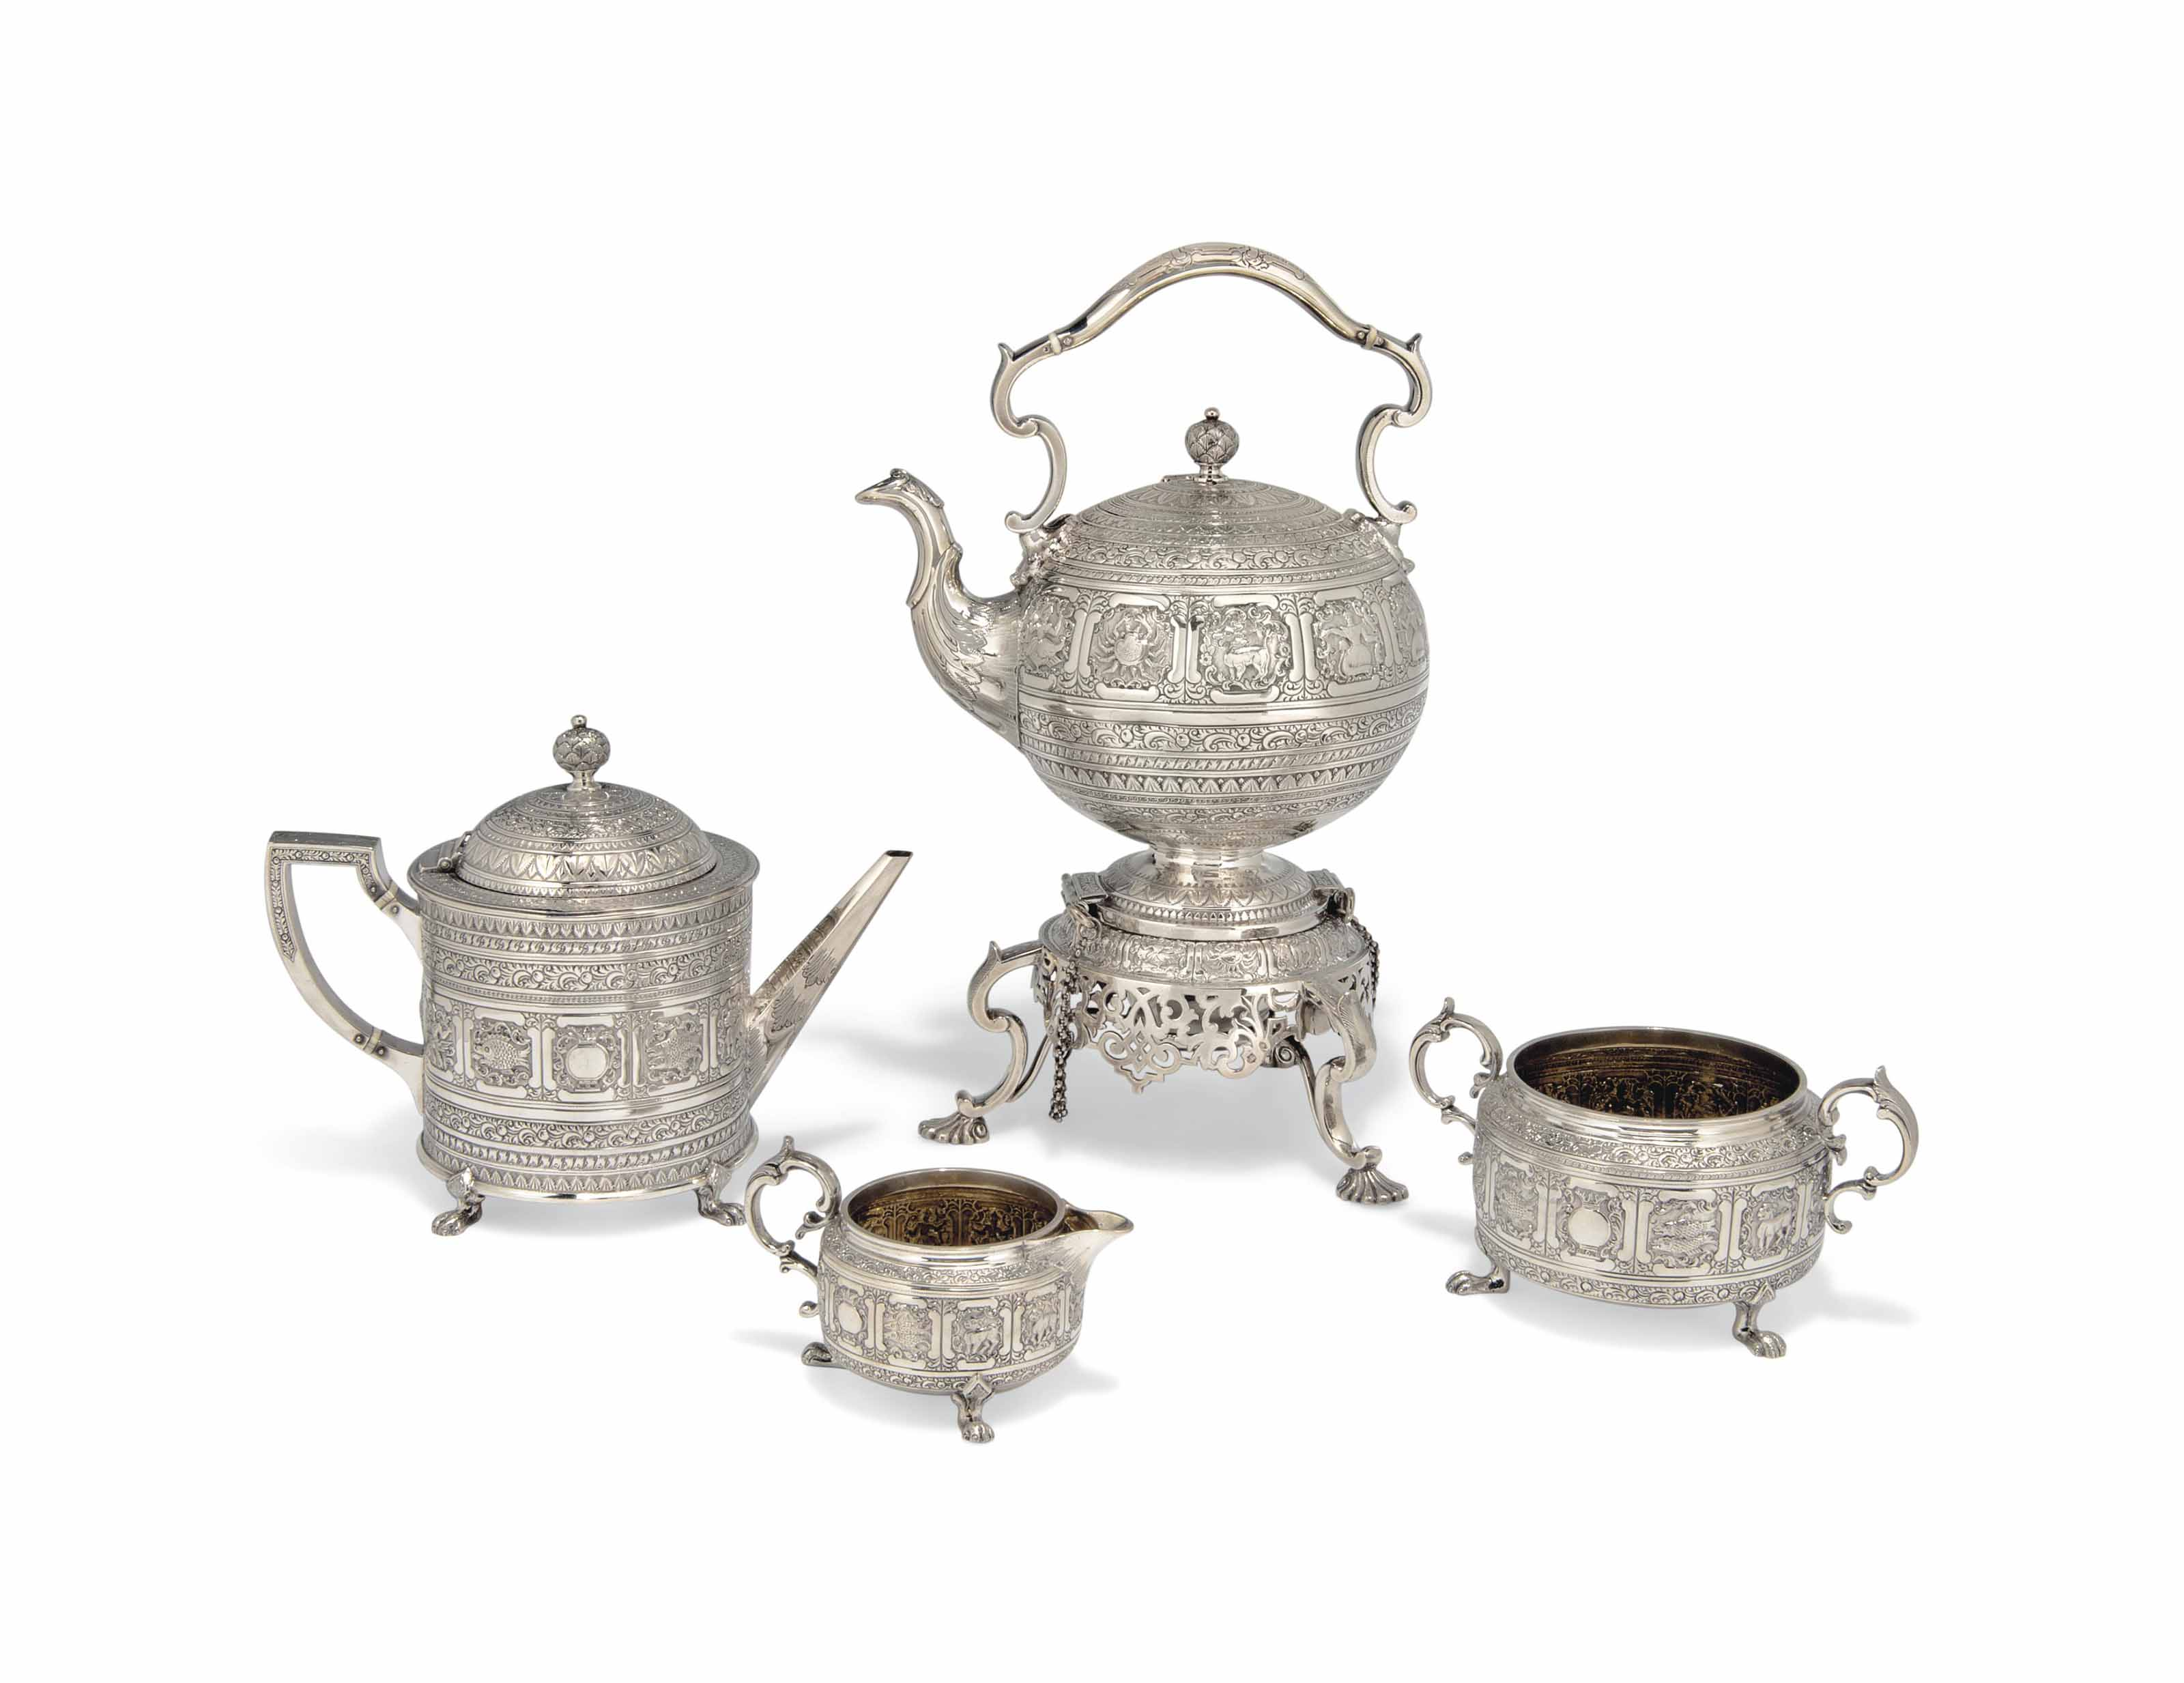 A VICTORIAN SCOTTISH THREE-PIECE SILVER TEASET WITH ASSOCIATED KETTLE, STAND AND LAMP